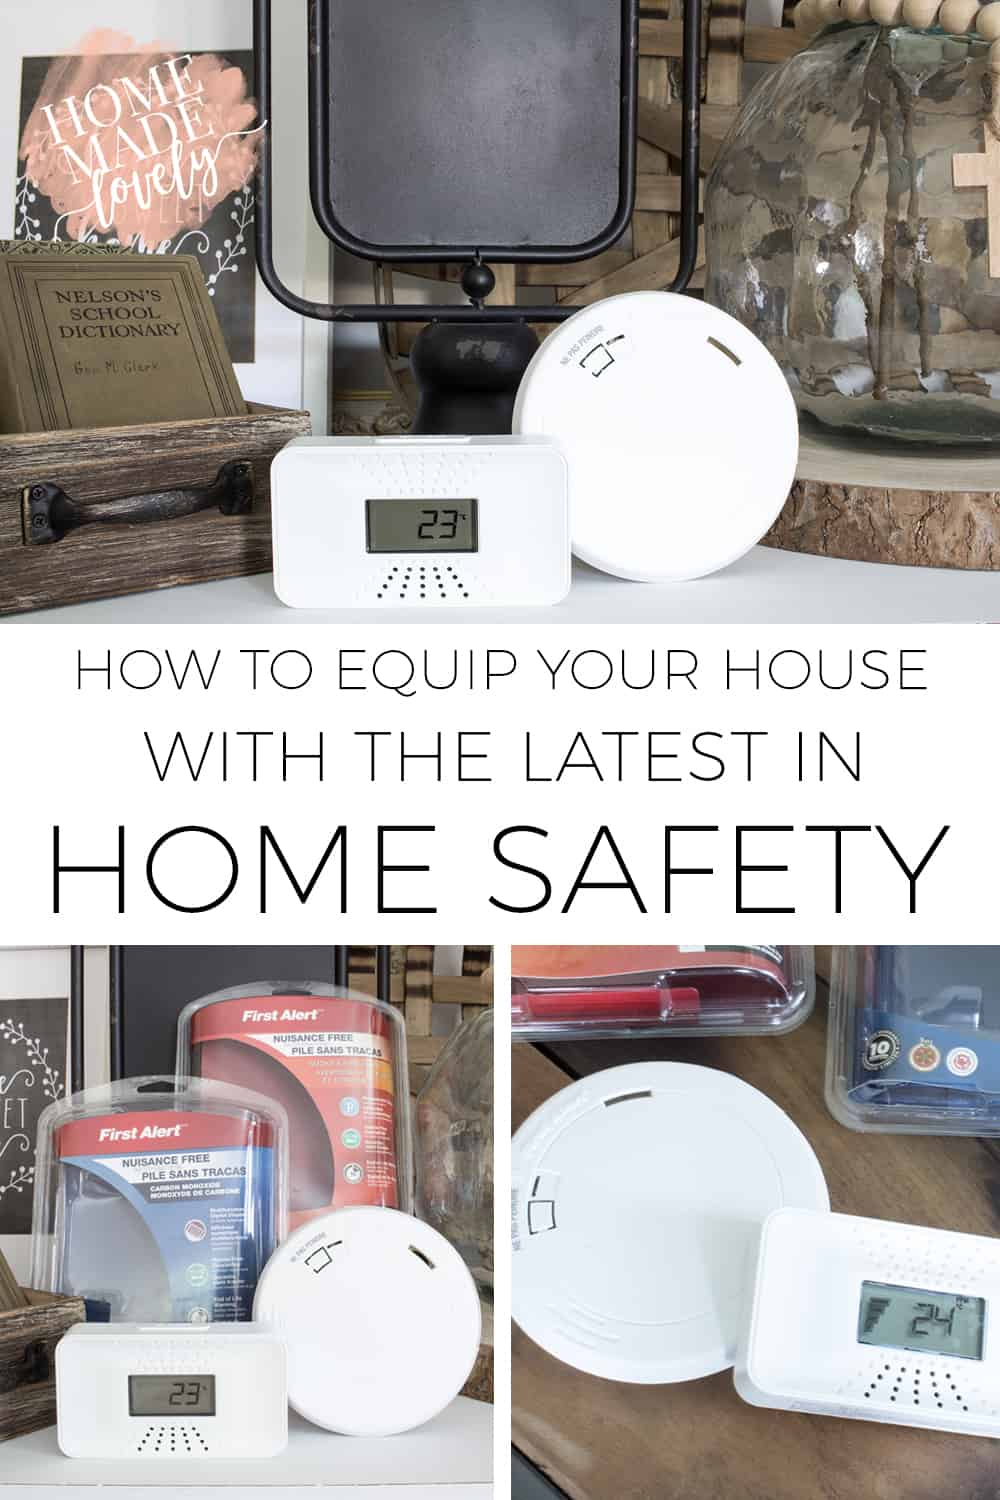 equip your house home safety